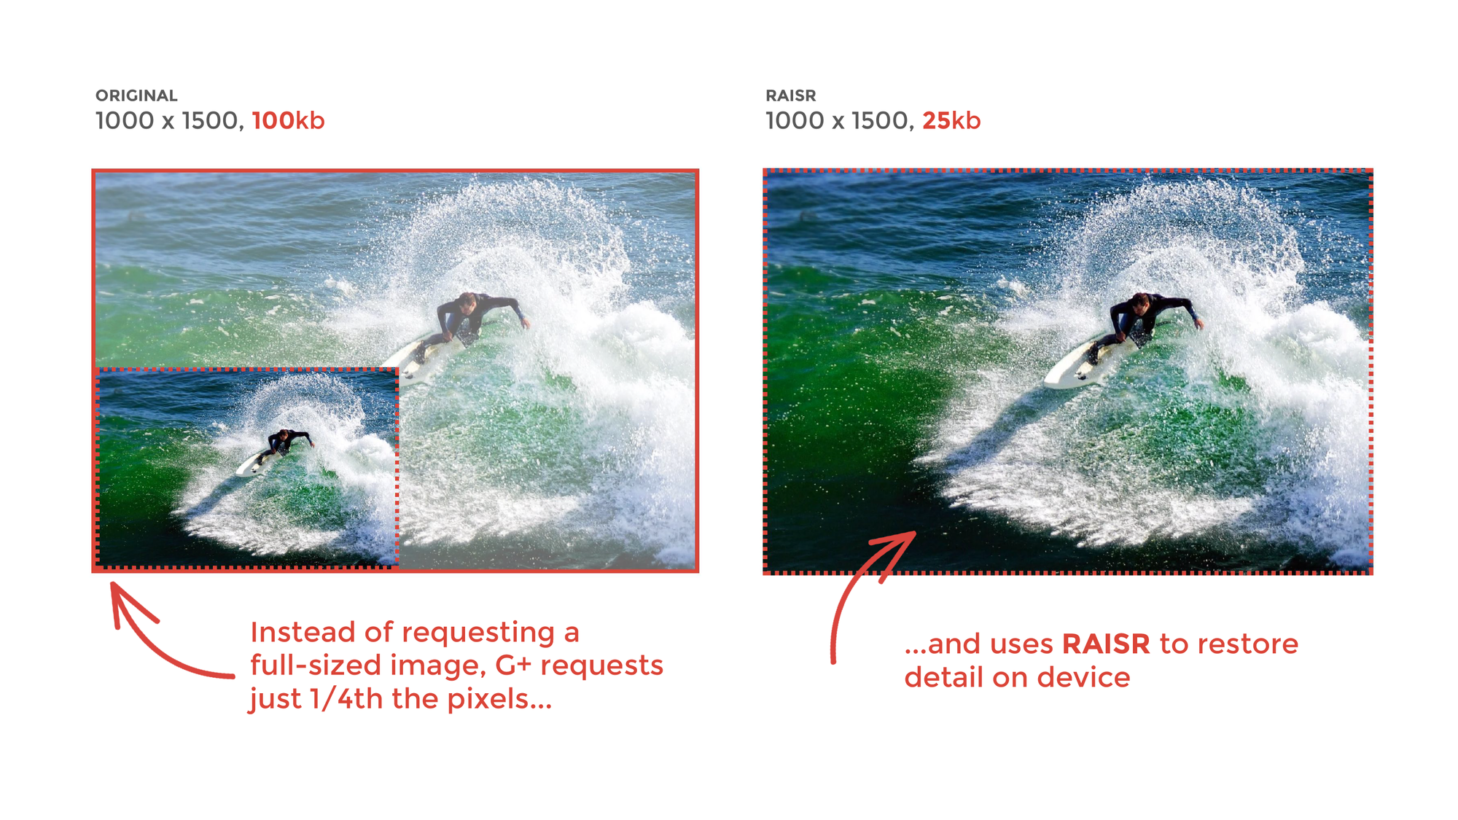 Google's new image compression tool uses 75% less bandwidth